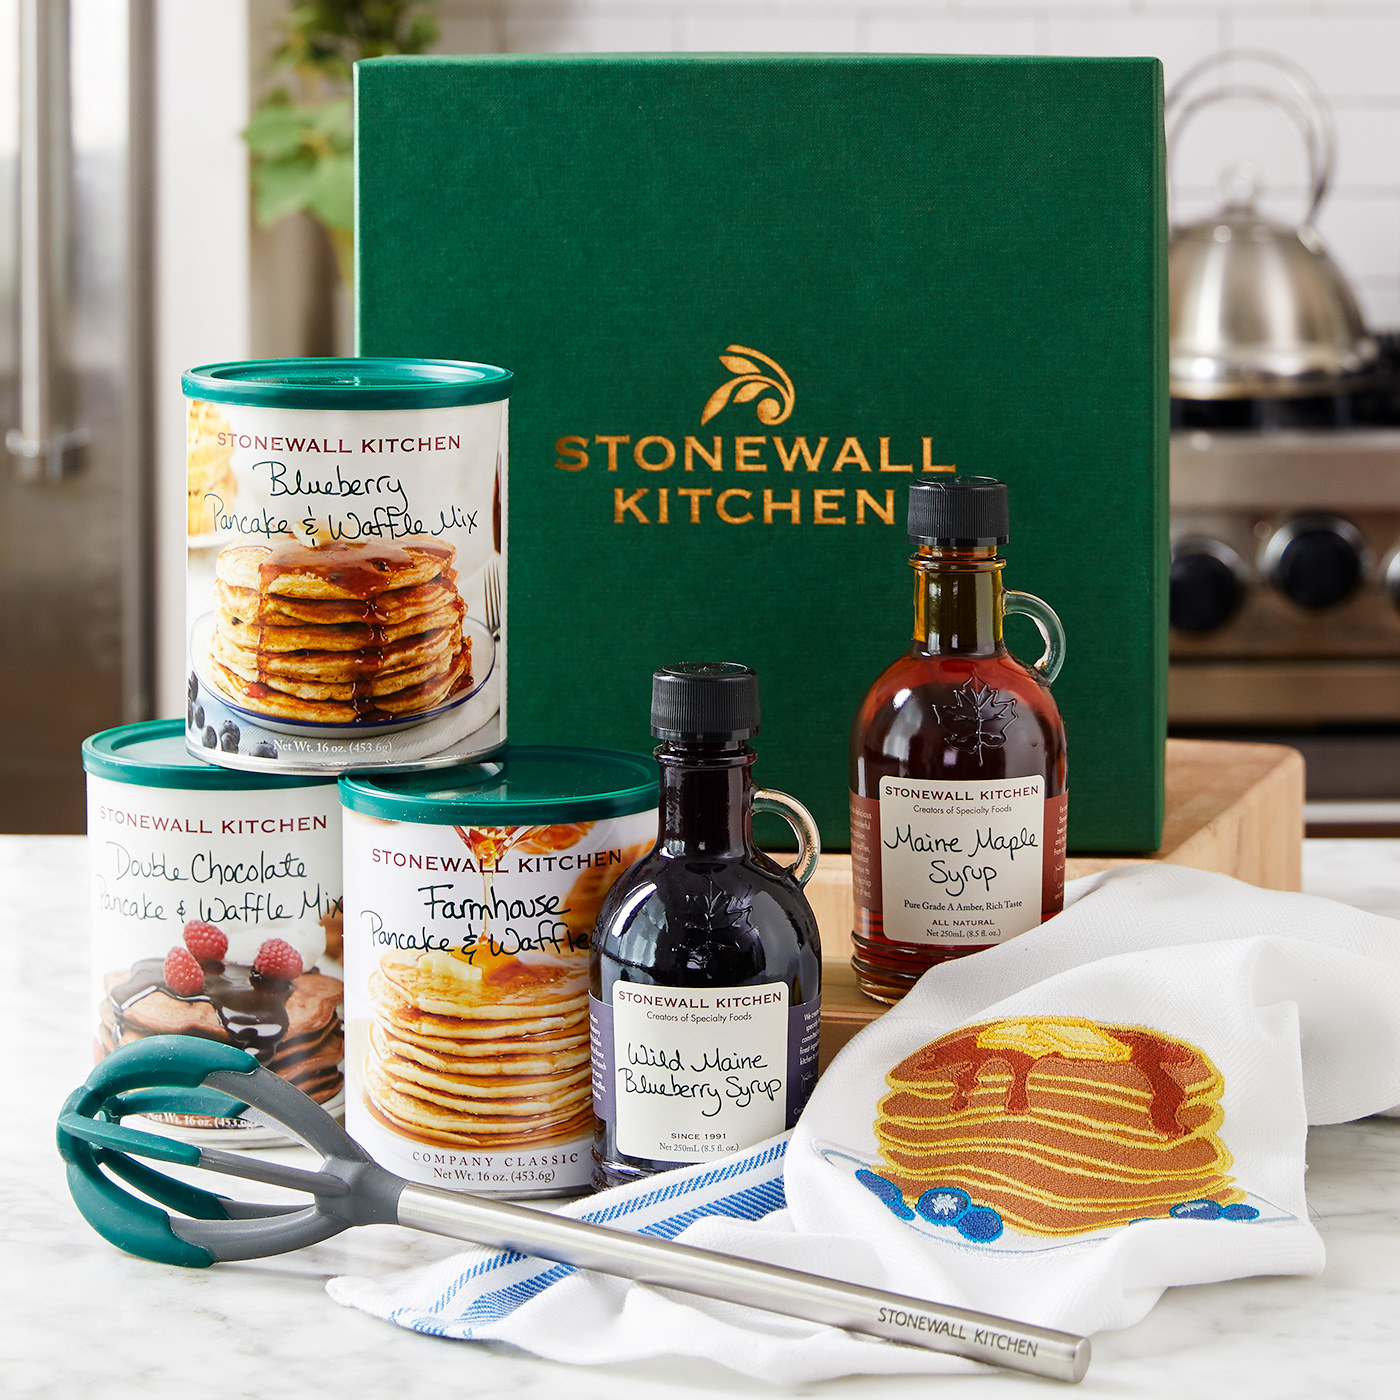 Stonewall Kitchen Farmhouse Pancake & Waffle Mix 36 Gifts For The Whole Family